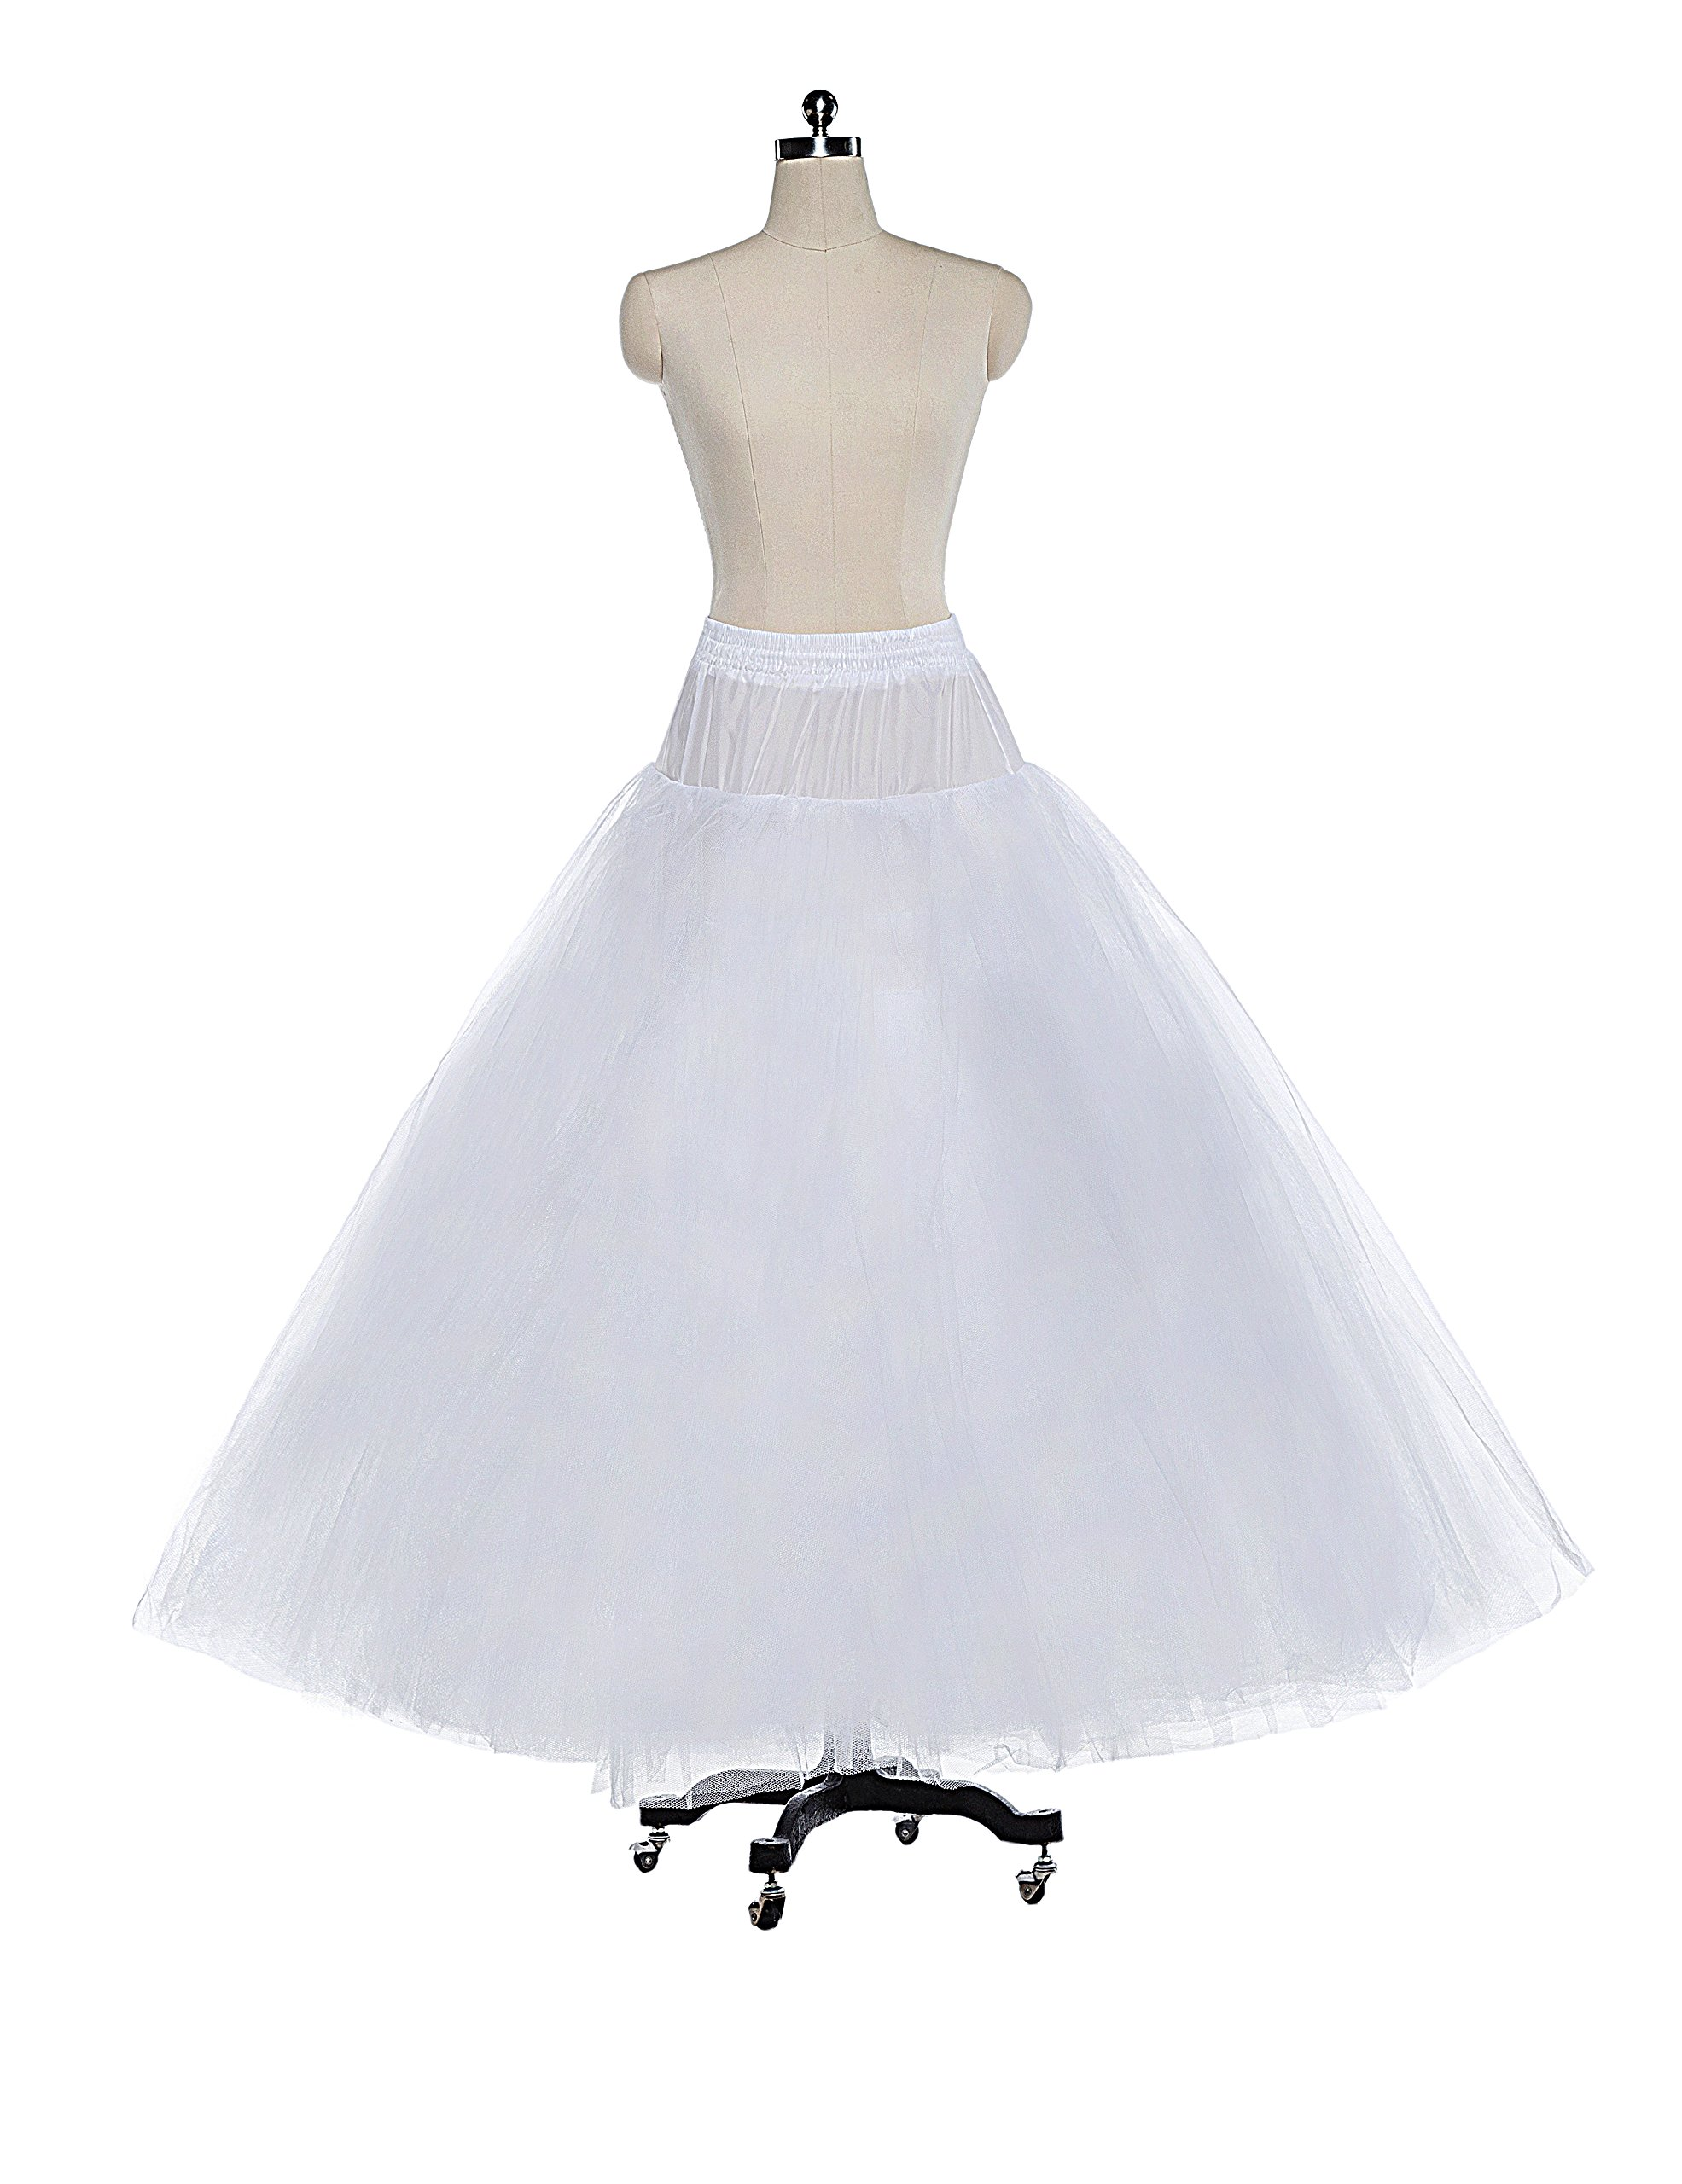 613cc1ae250e Galleon - 8 Layer Tulle Hoopless Bridal Petticoat Ball Gown Underskirt  Crinoline P003